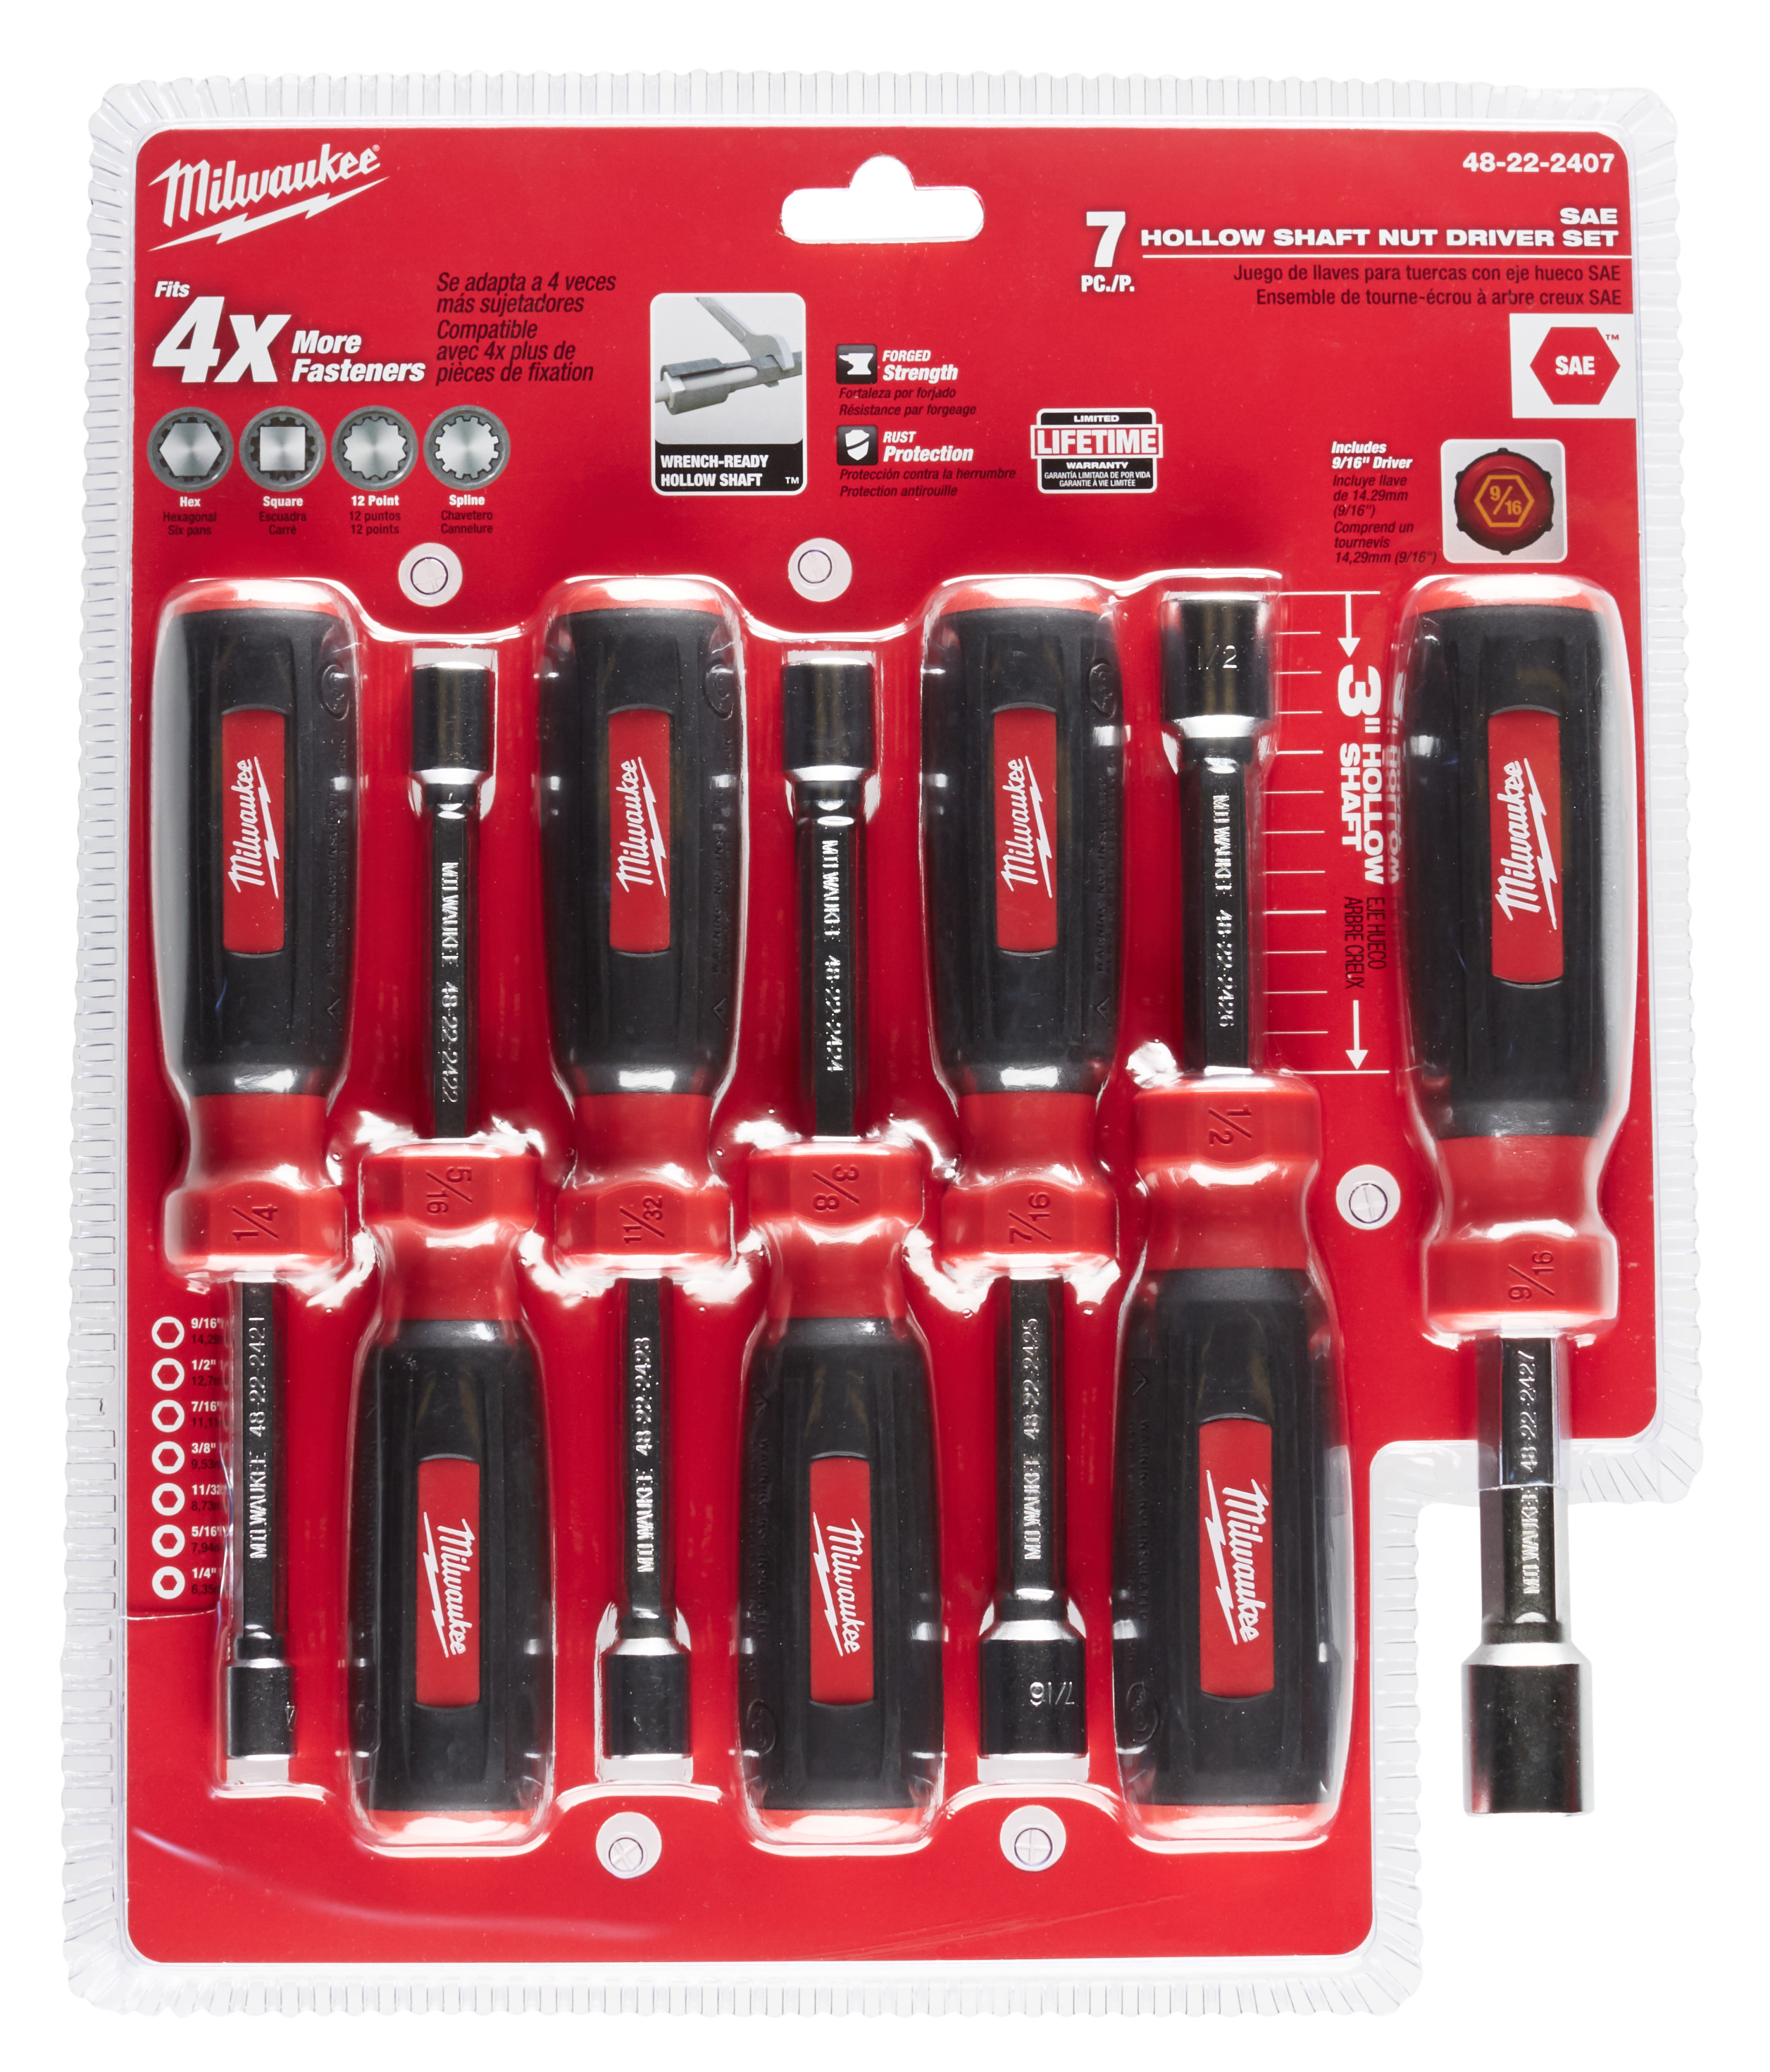 Milwaukee 48-22-2407 7pc Hollow Shaft SAE Nut Driver Set